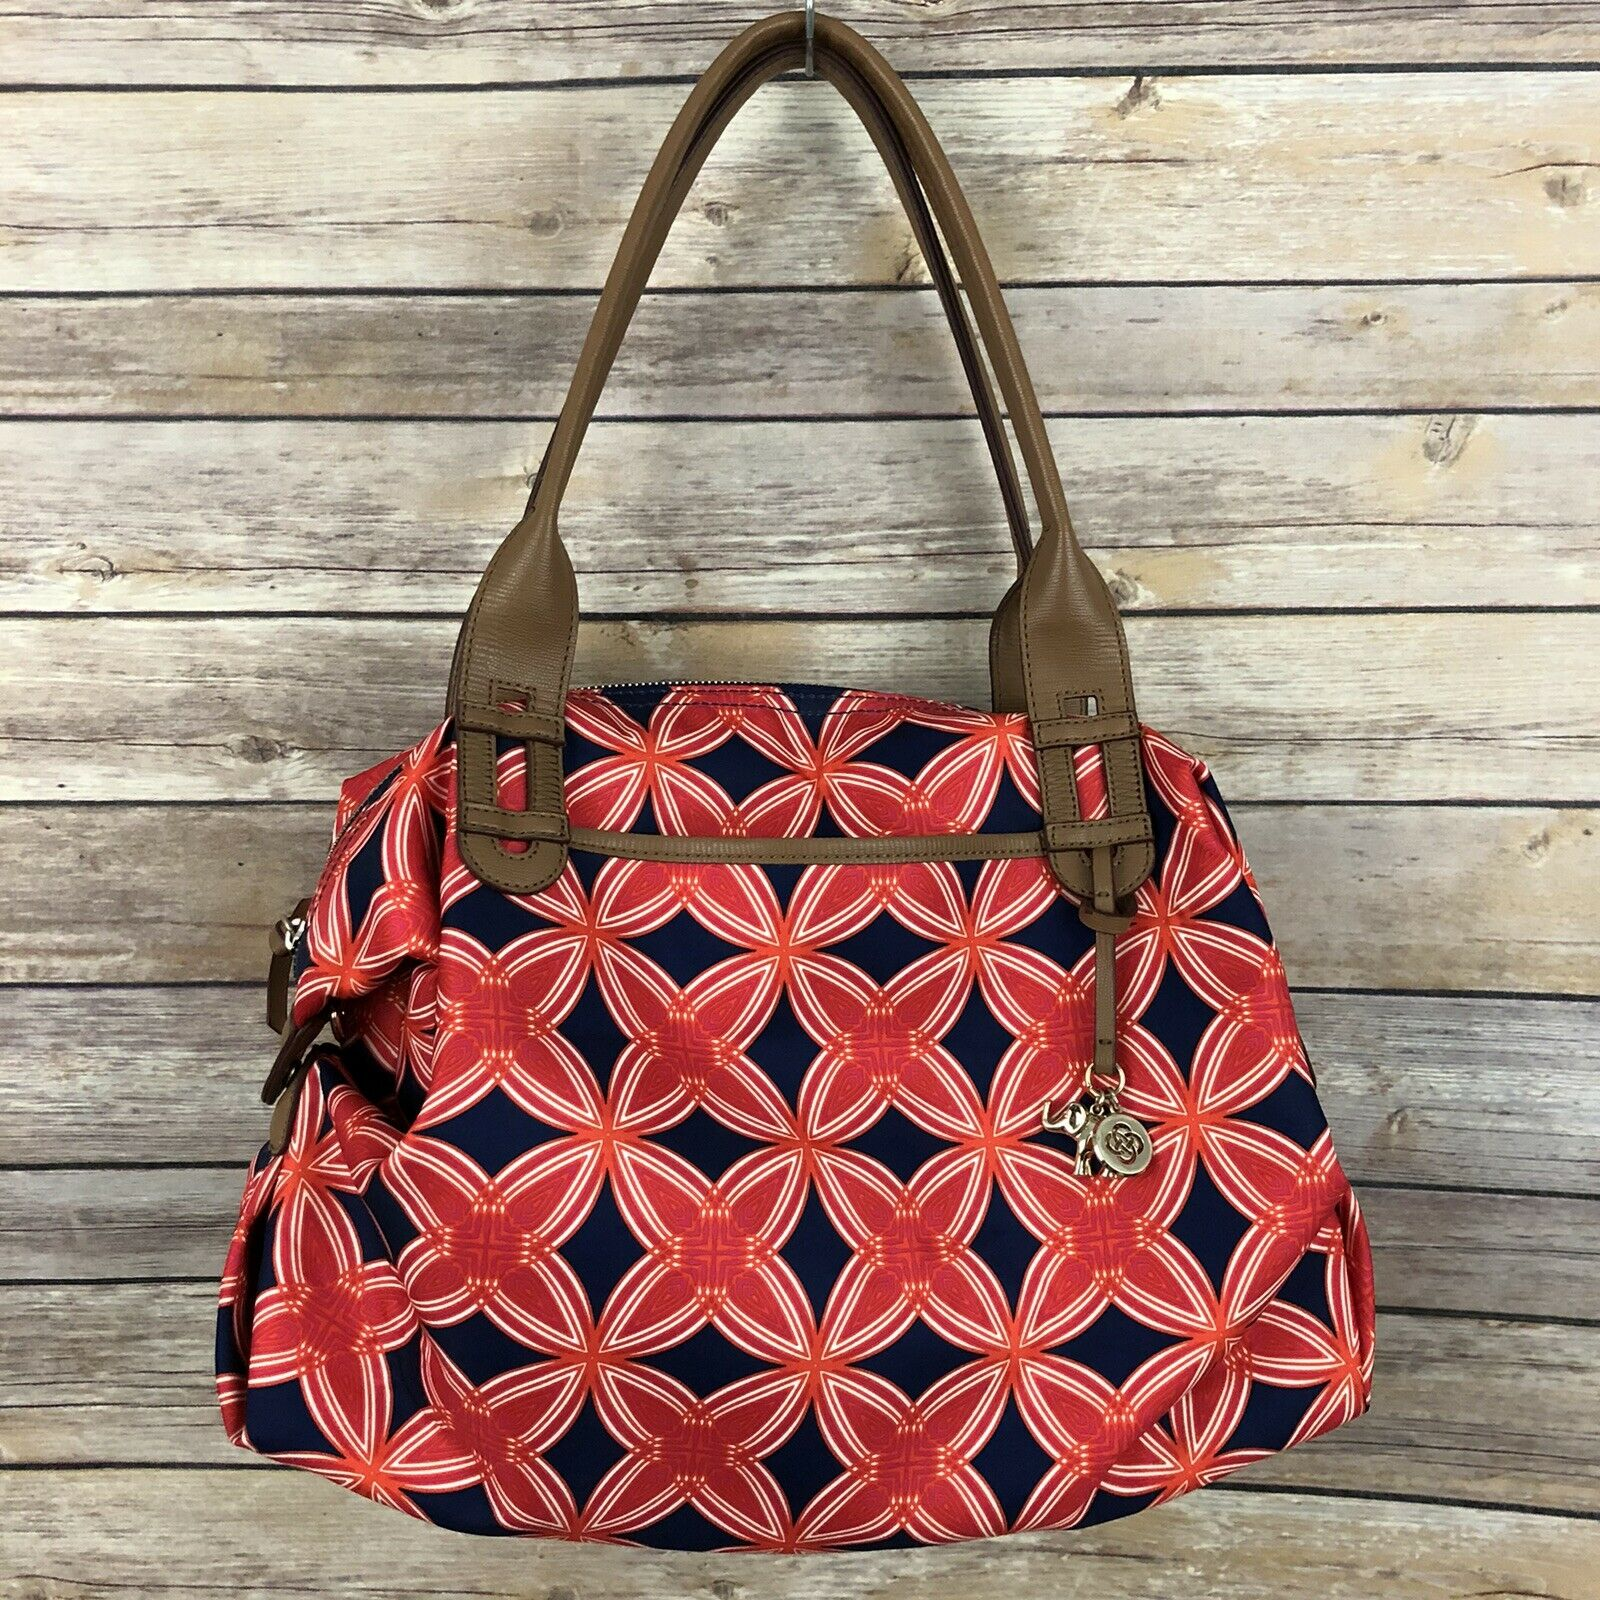 Stella & Dot 'How Does She Do It' Carryall Tote Red Orange Navy Geometric Floral